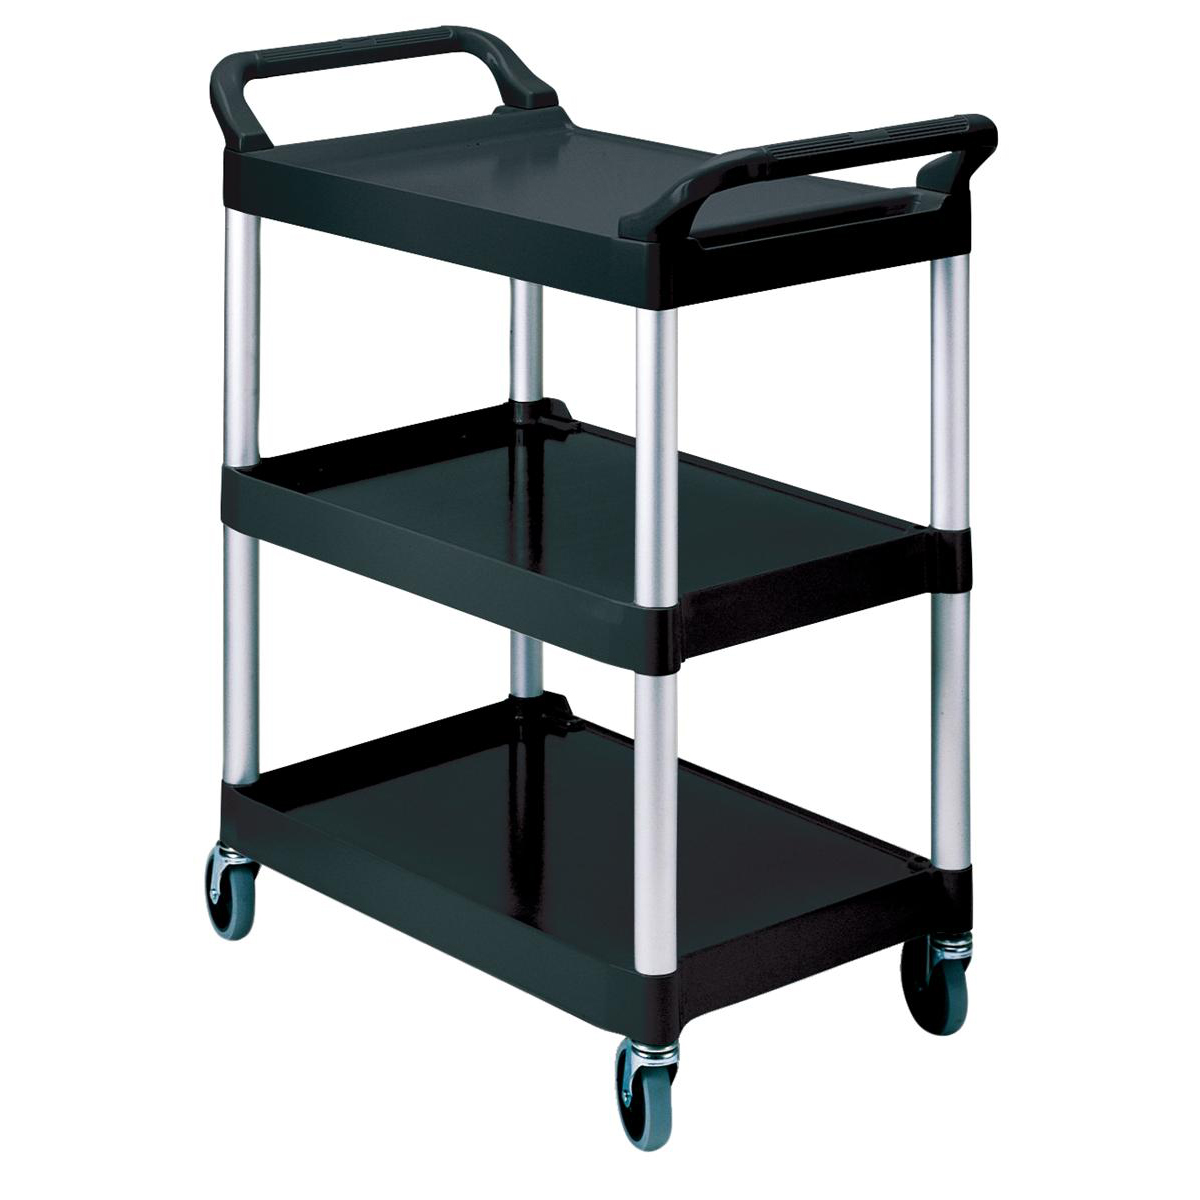 Recycling Bins Rubbermaid Utility Cart Polypropylene 3 Tiers Scratch Resistant W854xD473xH959mm Black Ref 3424-88-BLA